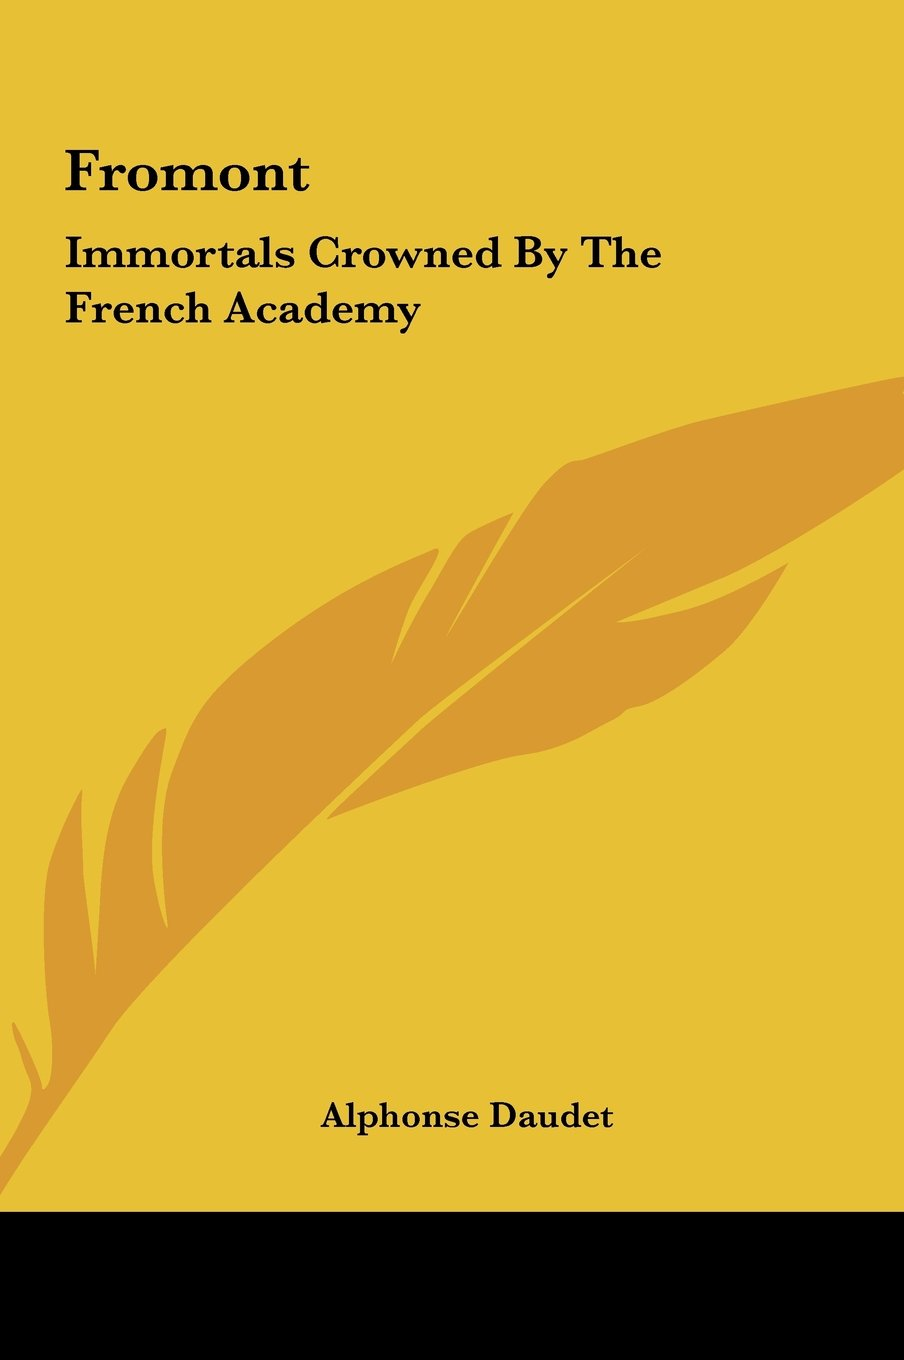 Download Fromont: Immortals Crowned By The French Academy ebook